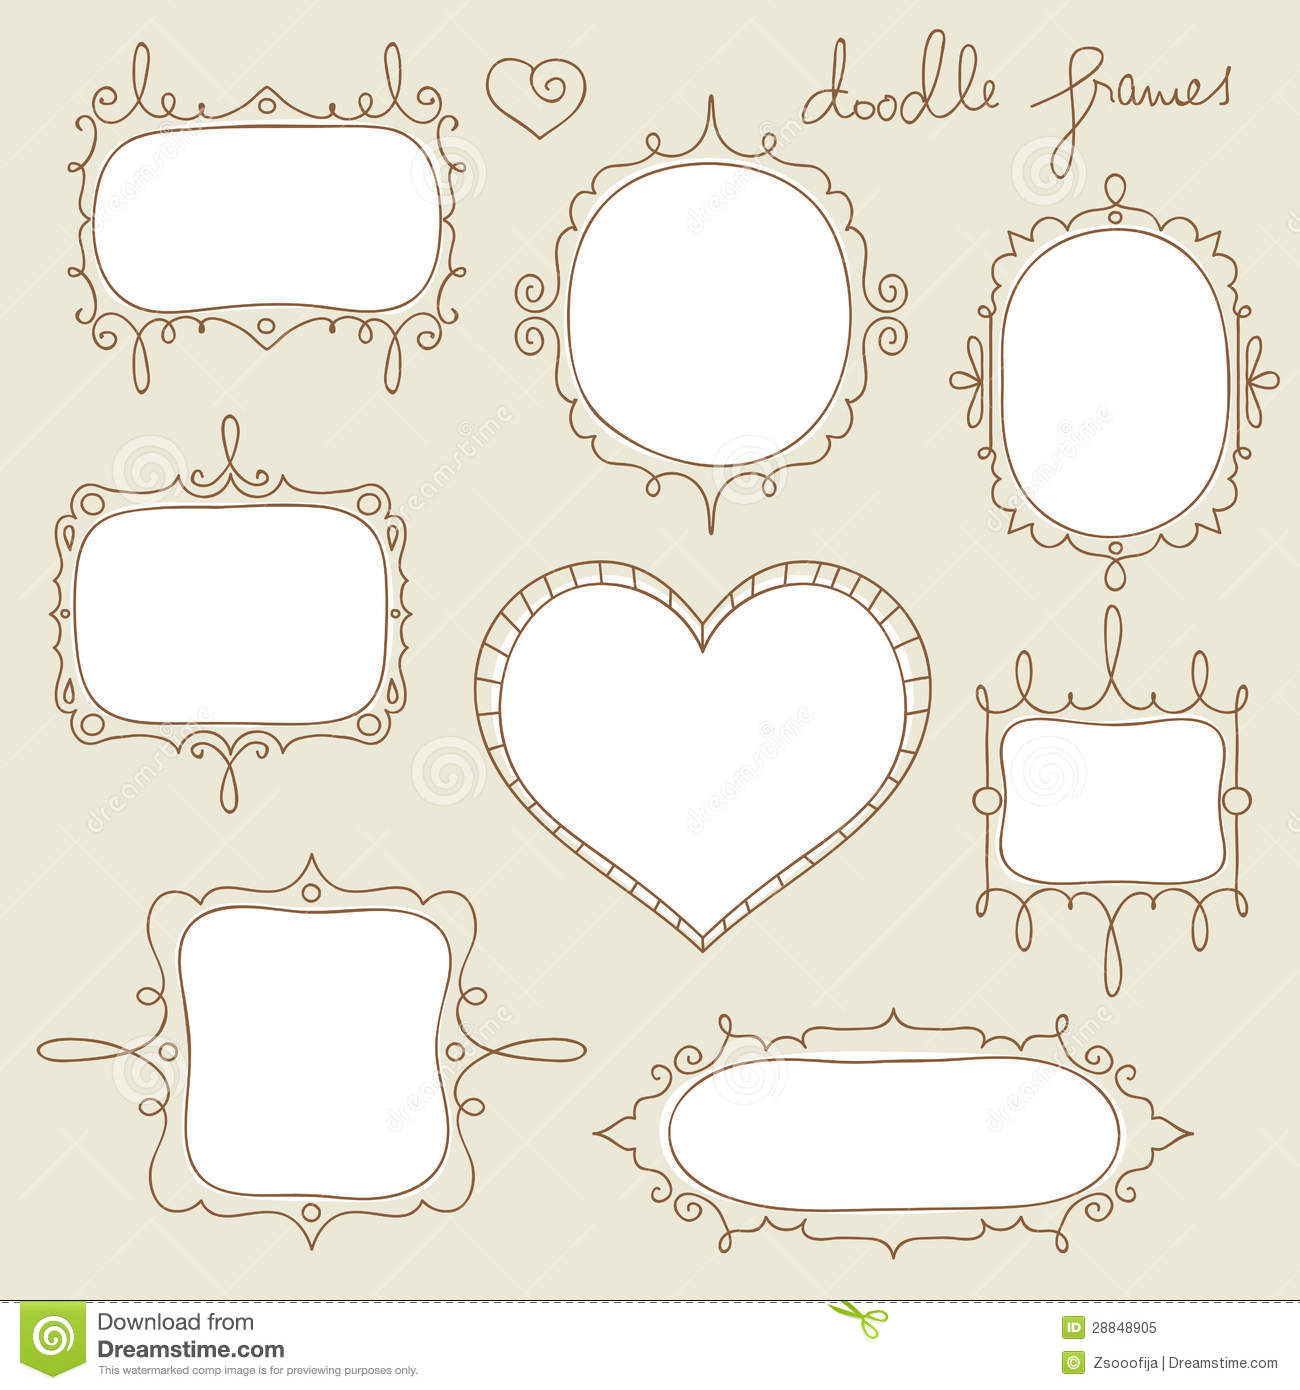 Doodle frames stock vector. Illustration of copy, design ...